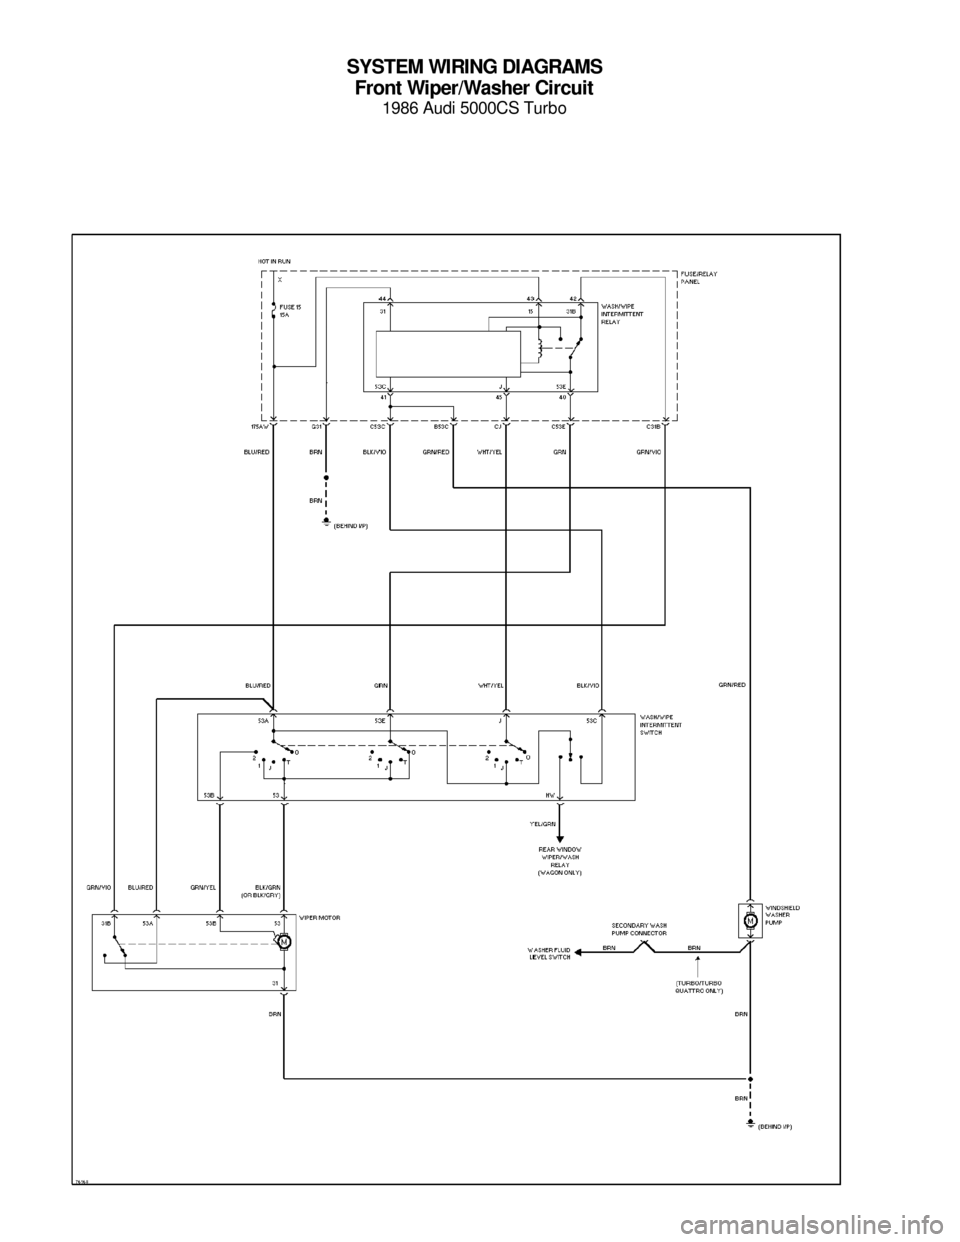 AUDI 5000CS 1986 C2 System Wiring Diagram SYSTEM WIRING DIAGRAMS Front Wiper/Washer Circuit 1986 Audi 5000CS Turbo For x     Copyright © 1998 Mitchell Repair Information Company, LLCMonday, July 19, 2004  05:53PM